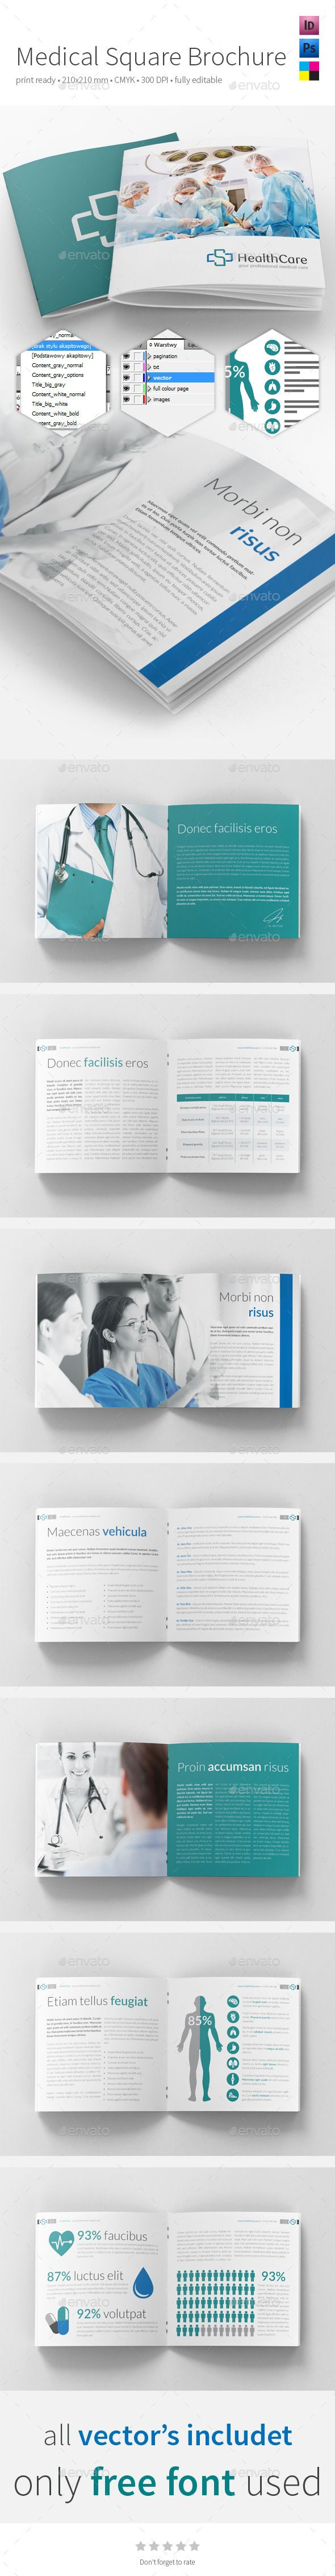 Medical Square Brochure 210x210mm — InDesign INDD #medicine #health • Available here → https://graphicriver.net/item/medical-square-brochure-210x210mm/11048959?ref=pxcr